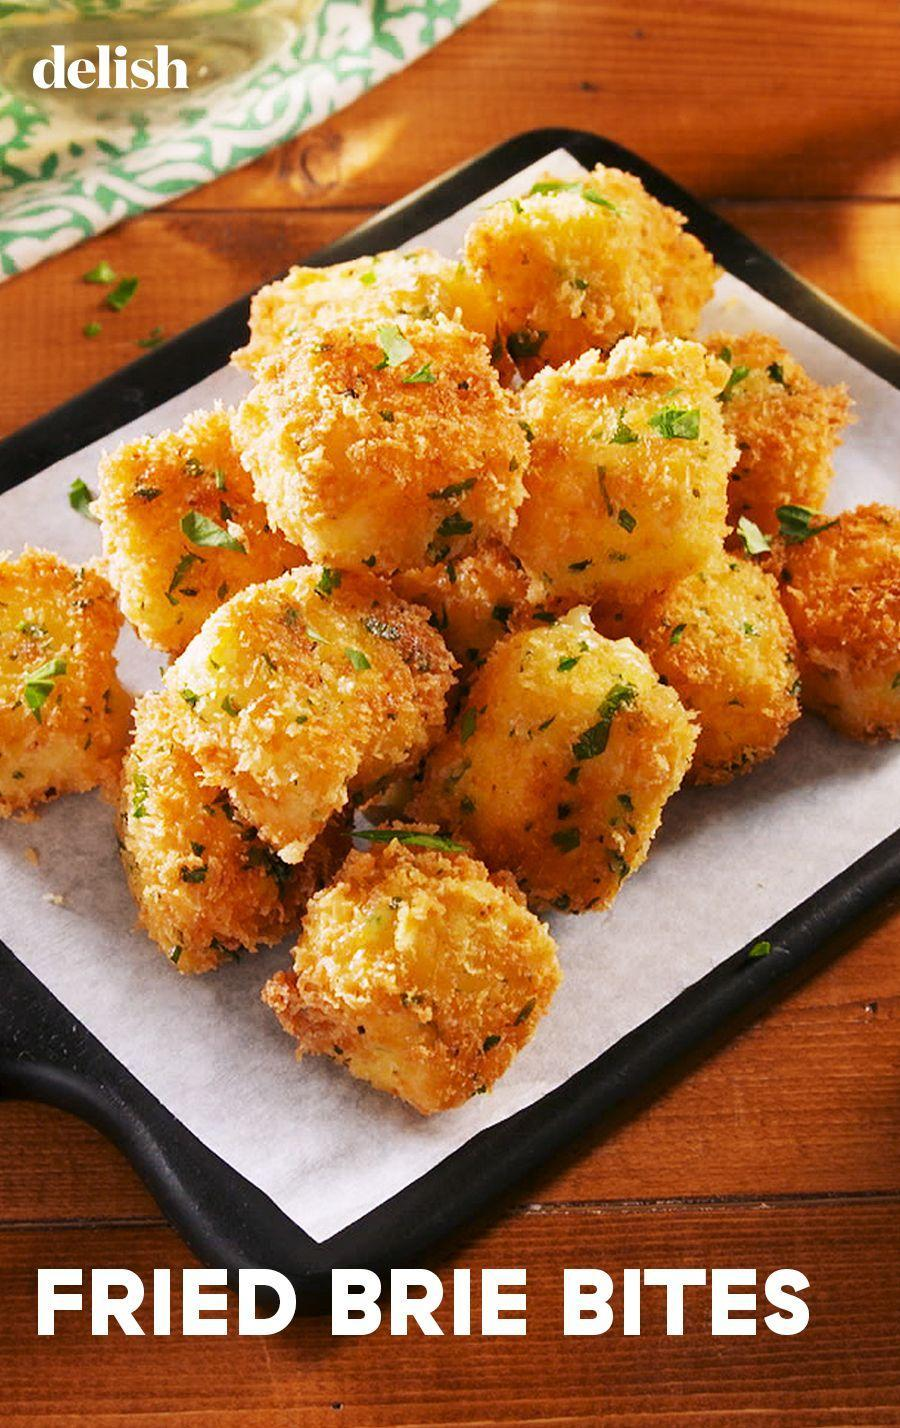 """<p>What's better than creamy brie? Fried bites that melt in your mouth.</p><p>Get the recipe from <a href=""""https://www.delish.com/cooking/recipe-ideas/a25429974/fried-brie-bites-recipe/"""" rel=""""nofollow noopener"""" target=""""_blank"""" data-ylk=""""slk:Delish"""" class=""""link rapid-noclick-resp"""">Delish</a>. </p>"""